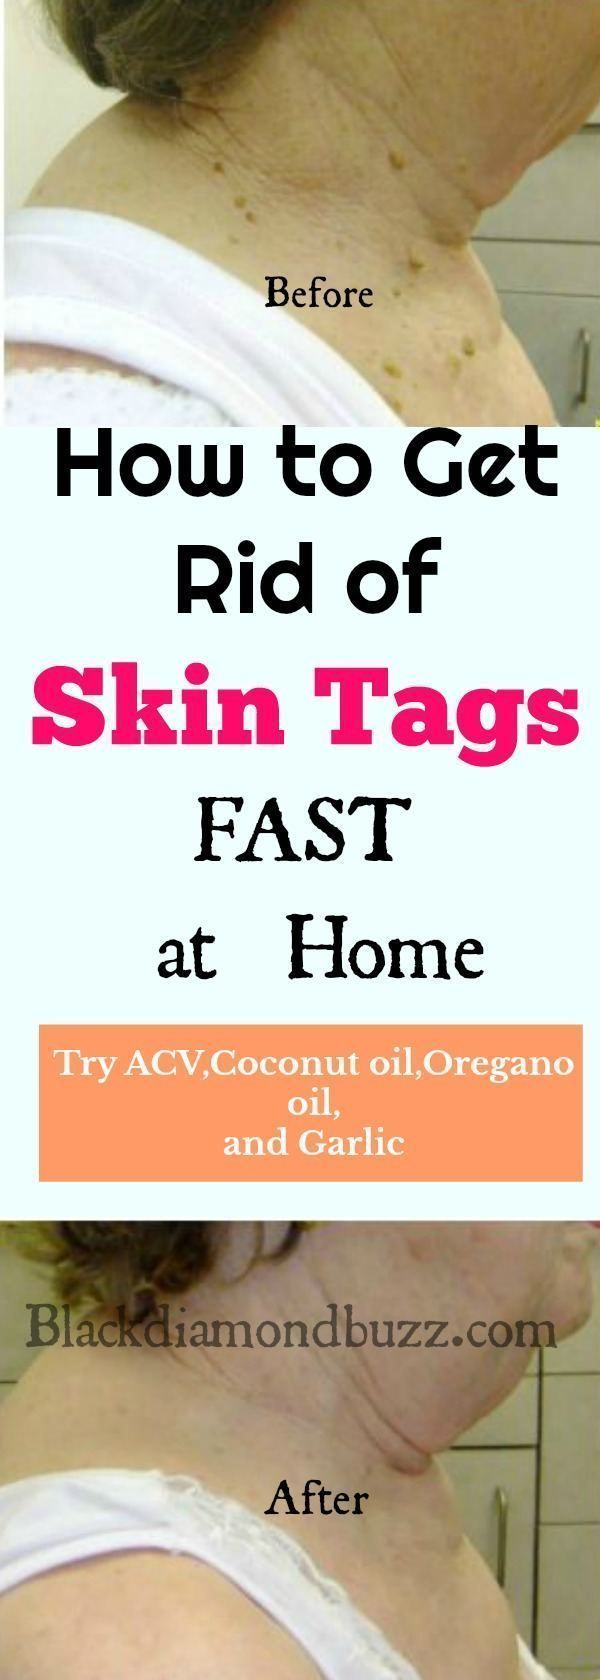 How to Remove Skin Tags Fast : Home Remedies  and Causes of Skin Tags   How to Remove Skin Tags Fast: Home Remedies and Causes of Skin Tags: Ever wondered how to remove skin tags? Skin tags are small growths of skin that appear in various parts of your body, due to friction, excessive body weight, or even due to genetic issues, it can also cause by insulin.... Garlic For Cystic Acne | Tea... #BakingSodaSkin #skintagremedy